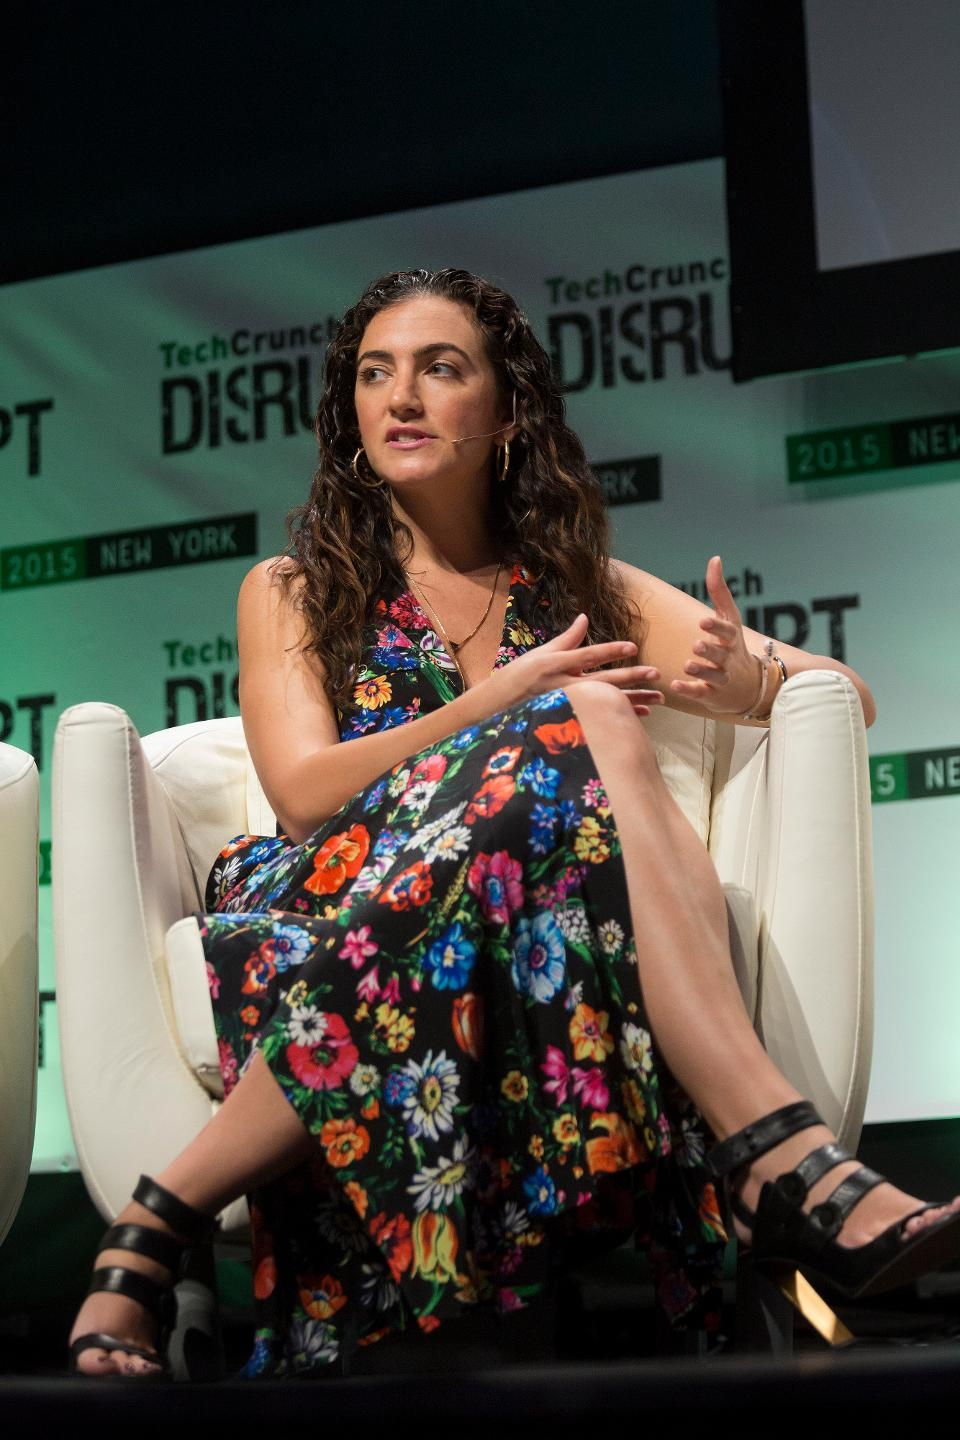 Jennifer Hyman, CEO and cofounder of Rent the Runway